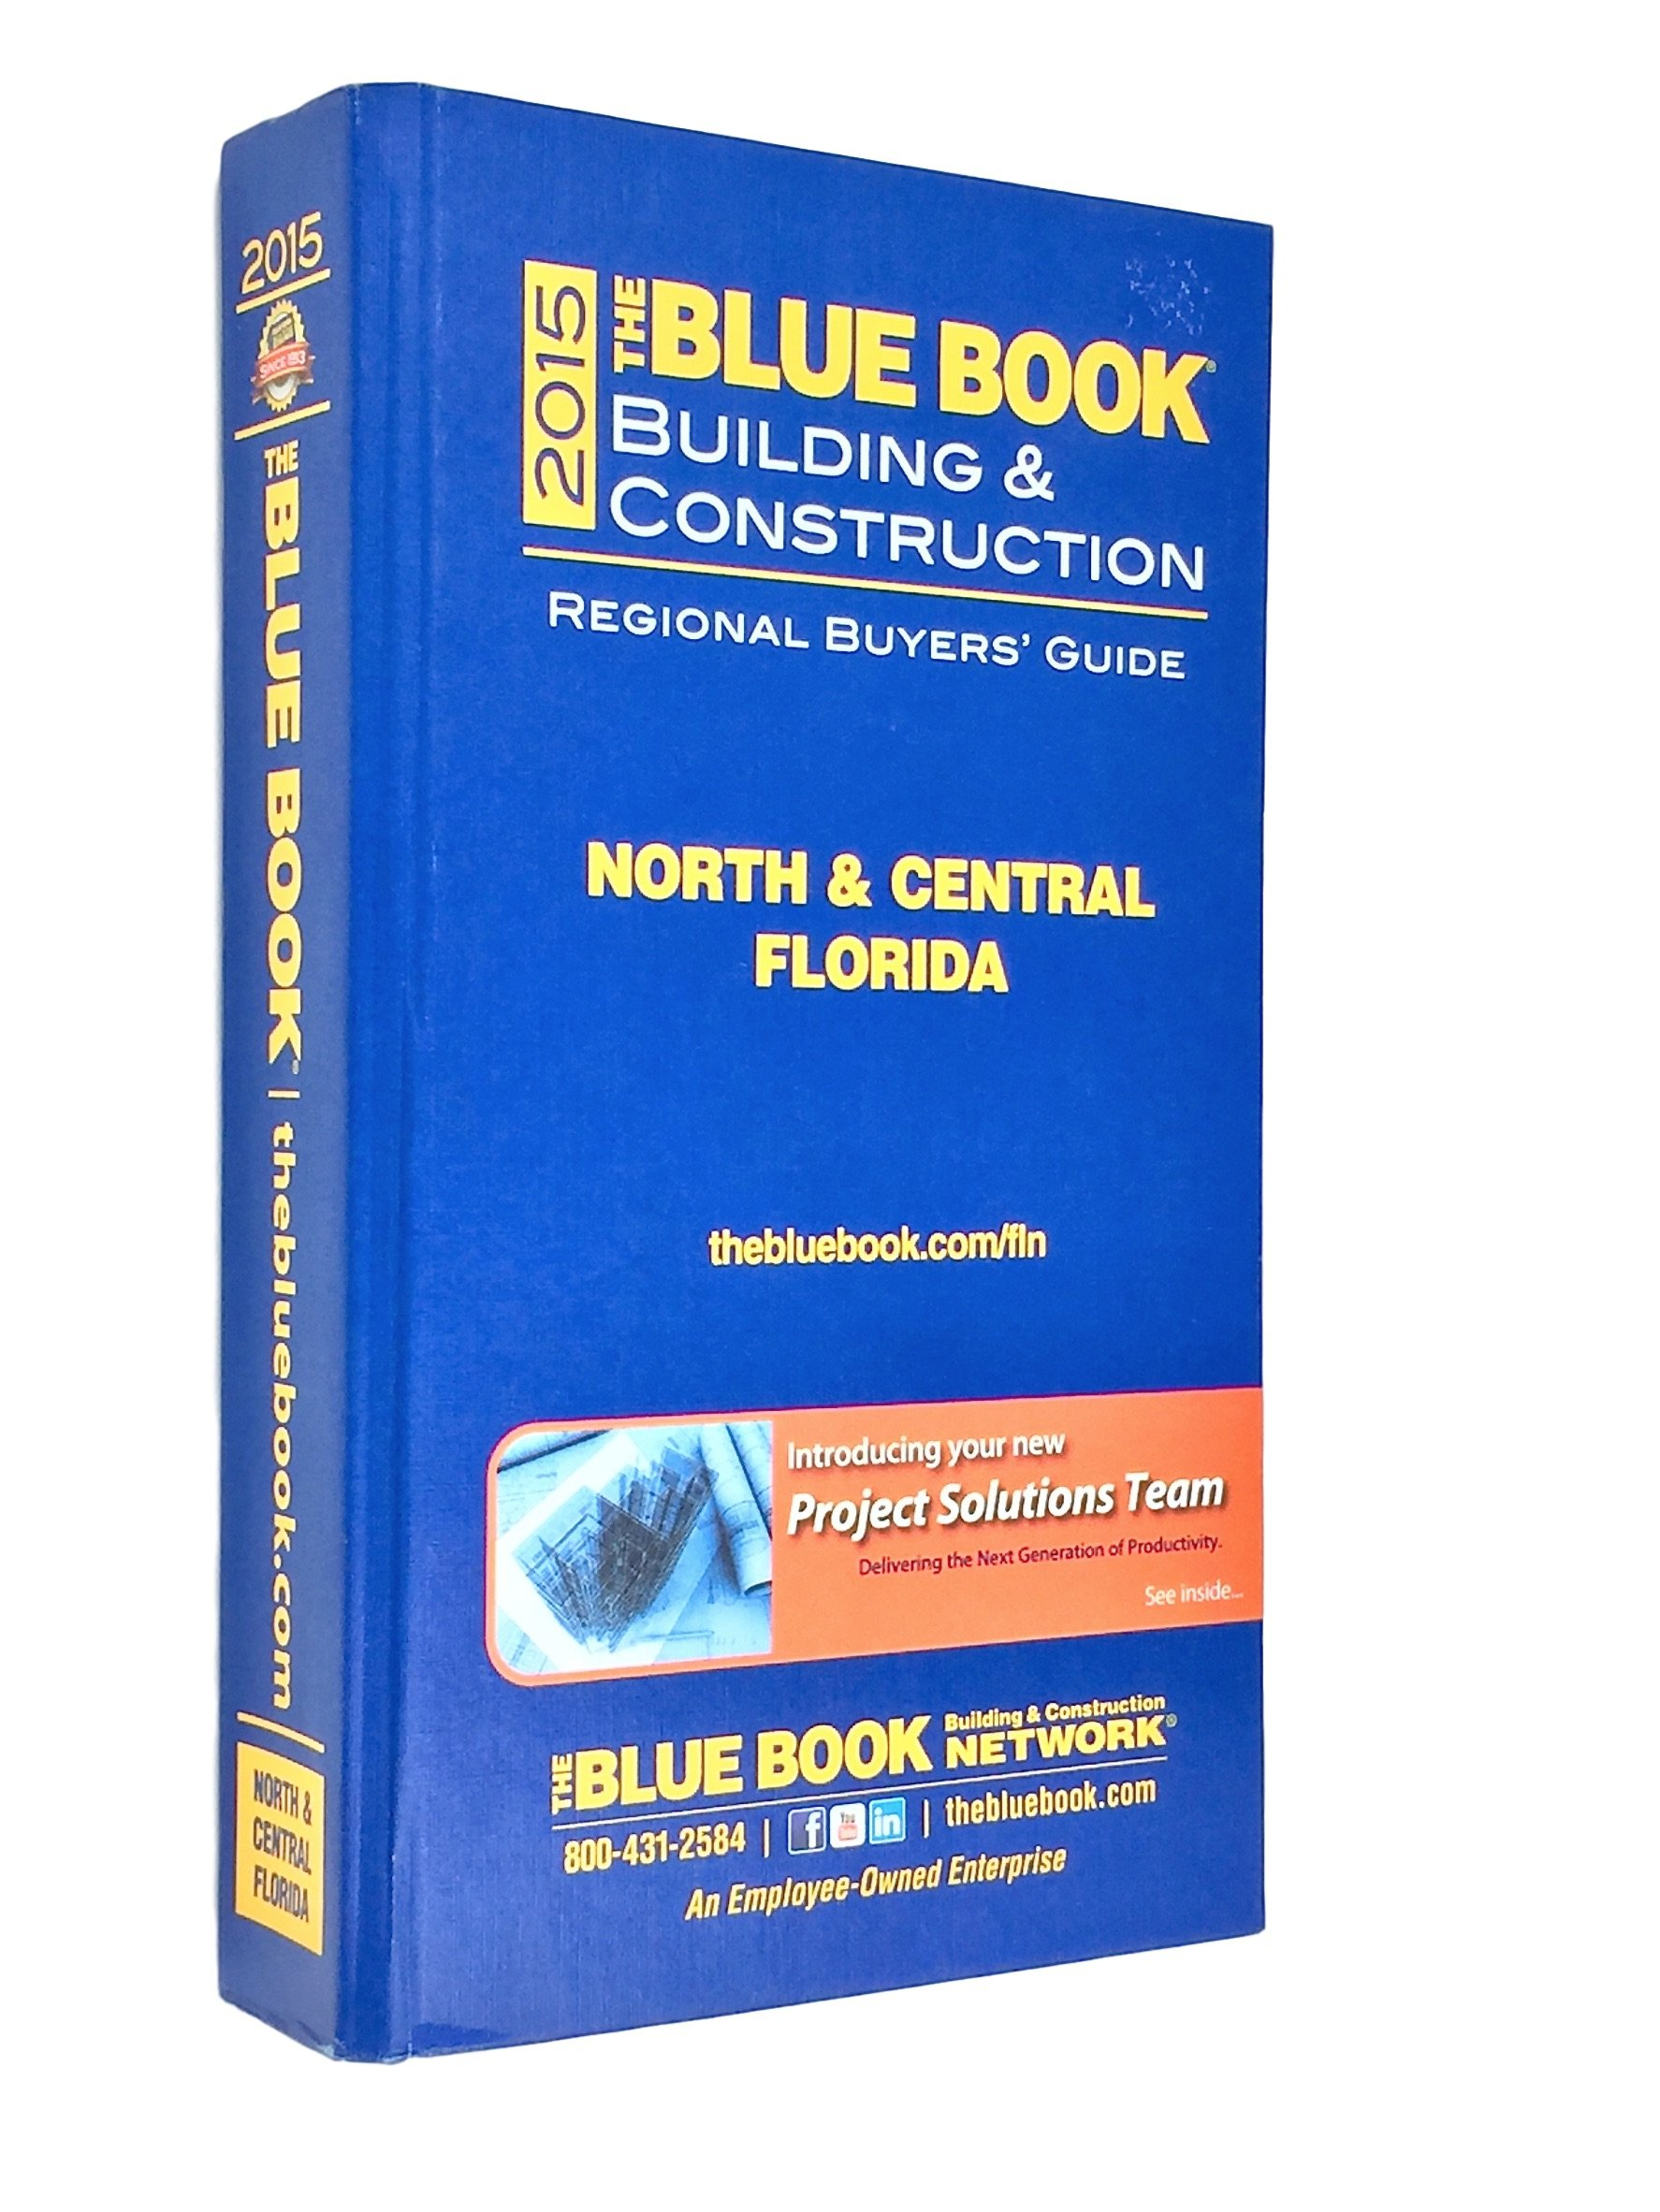 Construction Blue Book >> 2015 The Blue Book Building Construction Regional Buyers